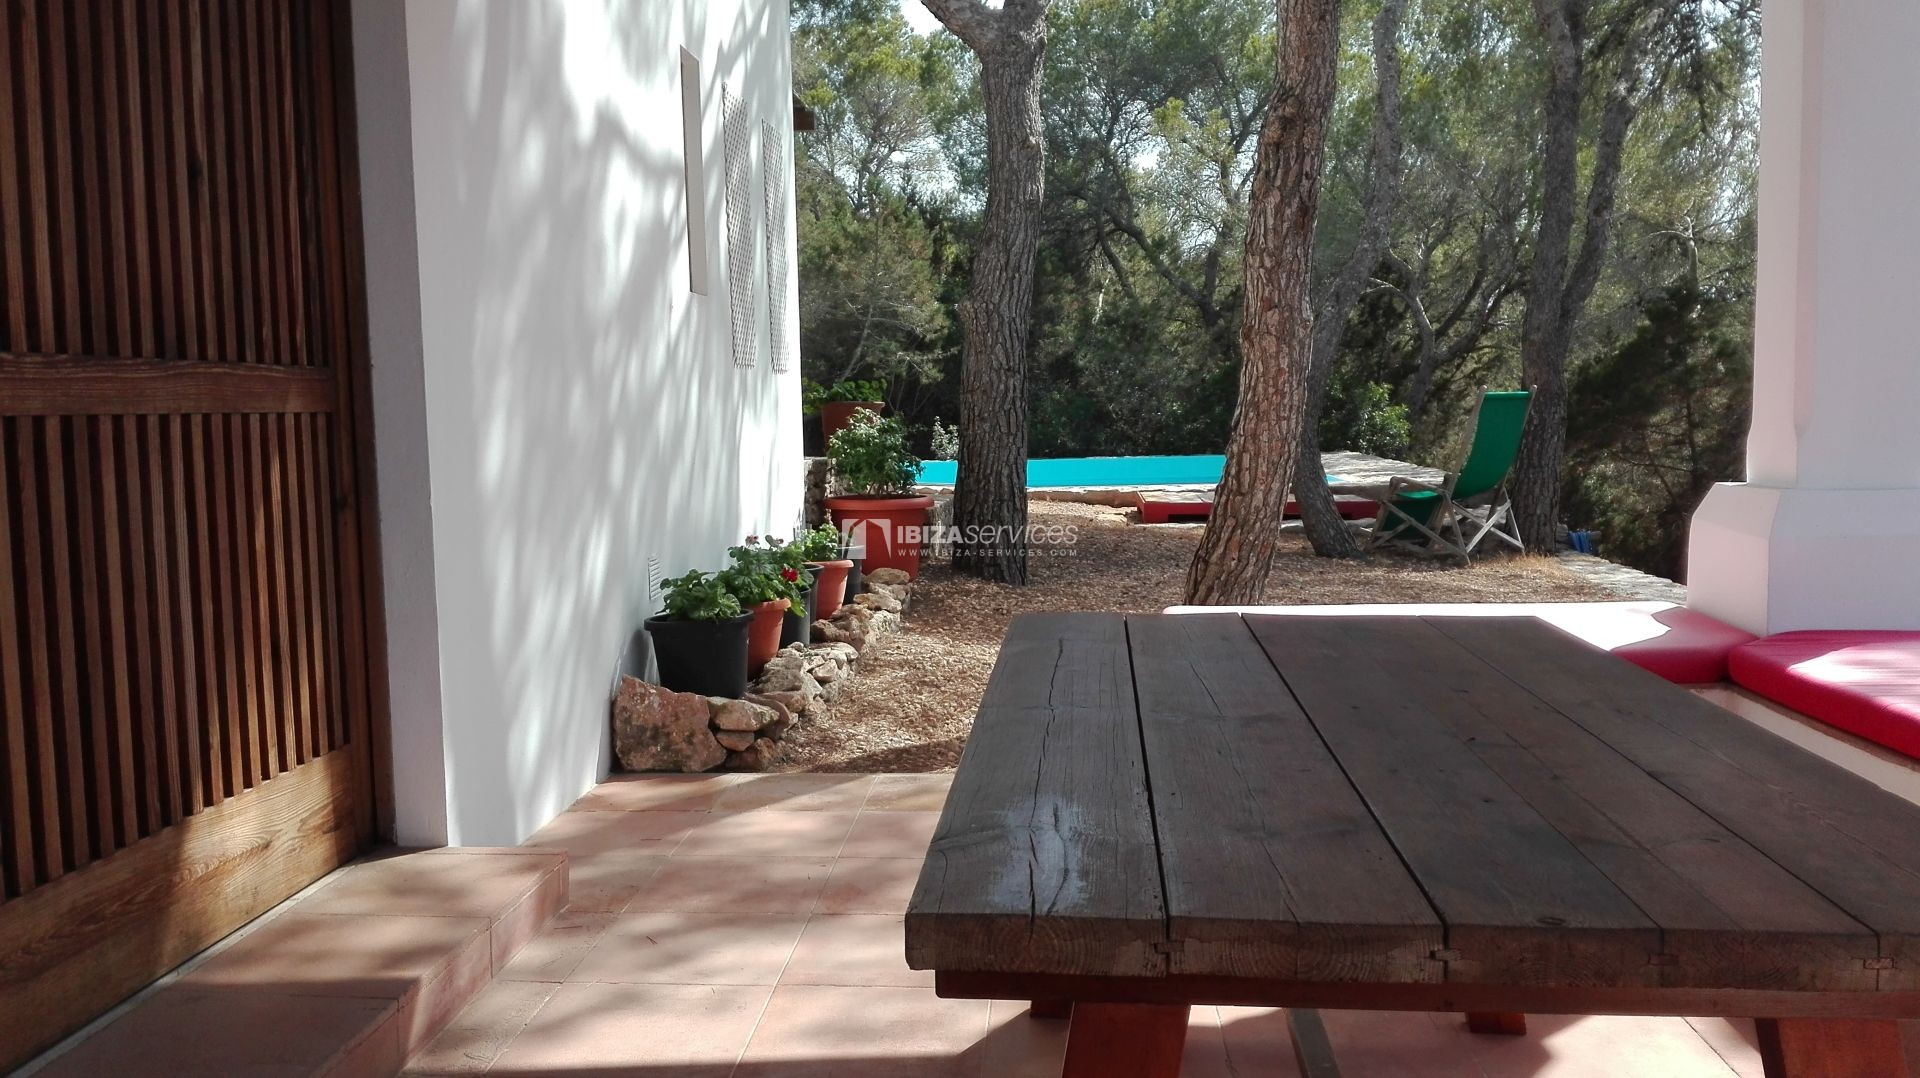 4 bedroom Villa for rent in Formentera perspectiva 33